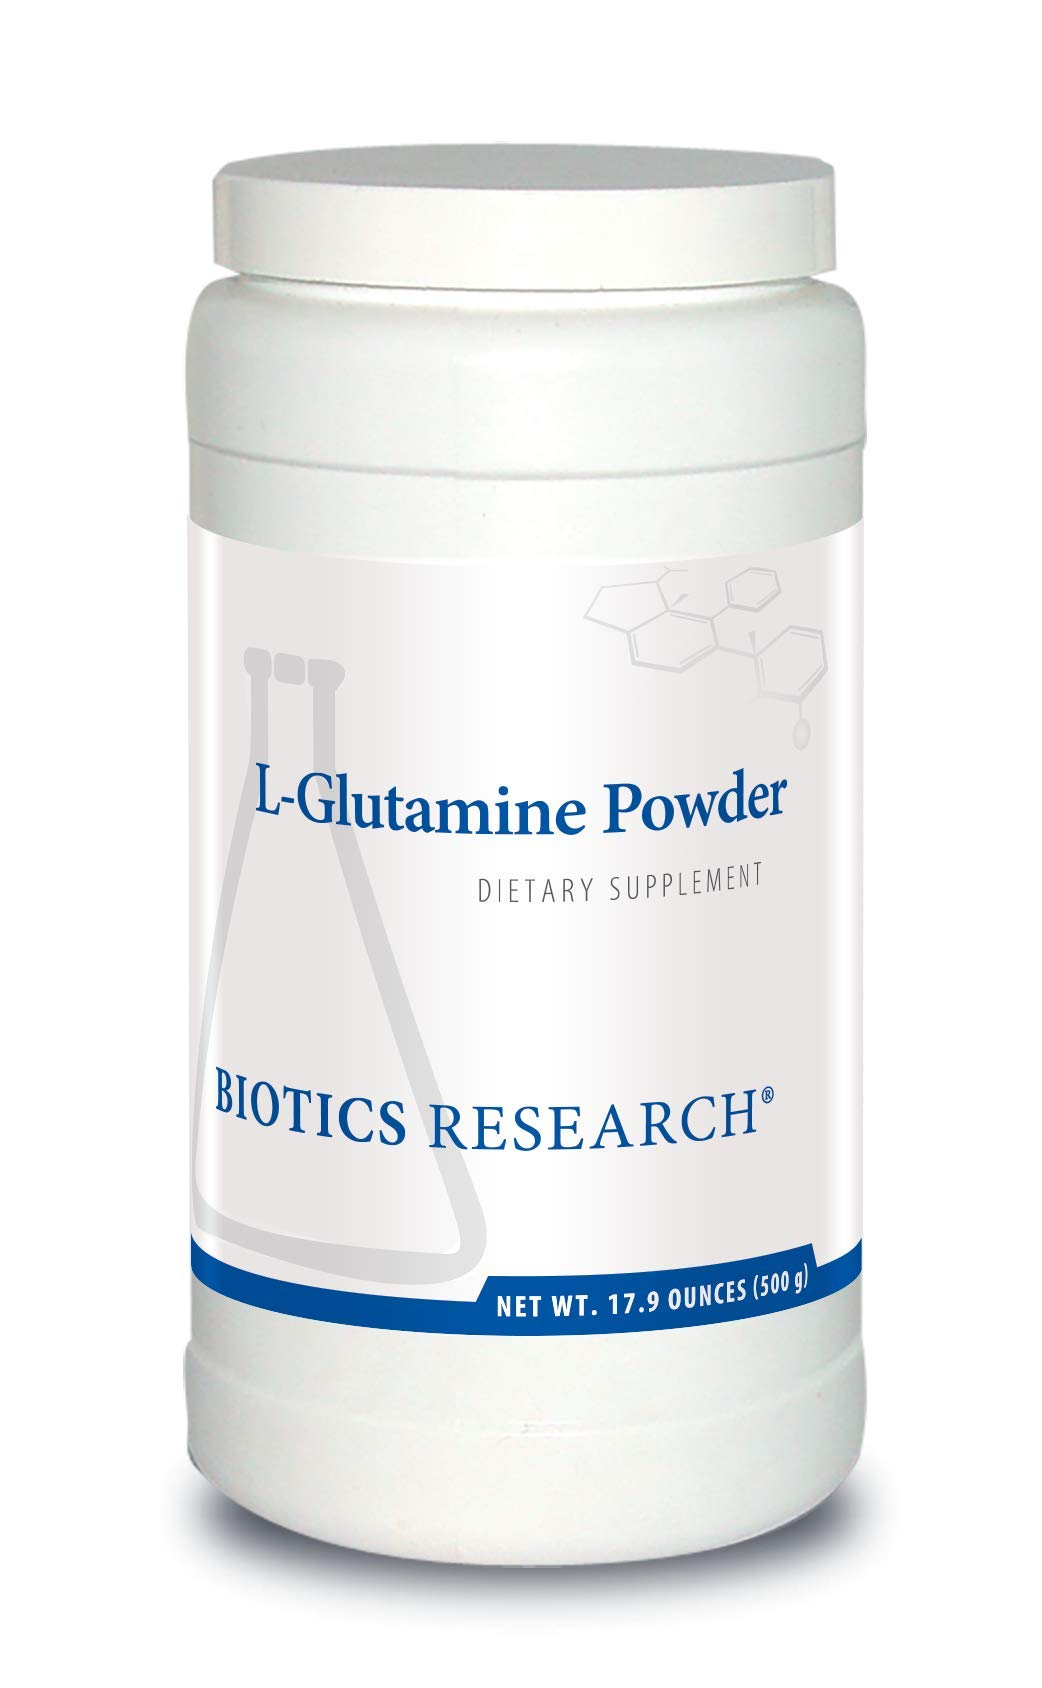 Biotics Research L-Glutamine Powder - Powdered Formula, 3 g/Serving, Gastrointestinal Health, Gut Lining Support, Muscle Repair, Lean Muscle, Antioxidant Activity. 17.9 Ounces (500g)(166 Servings)